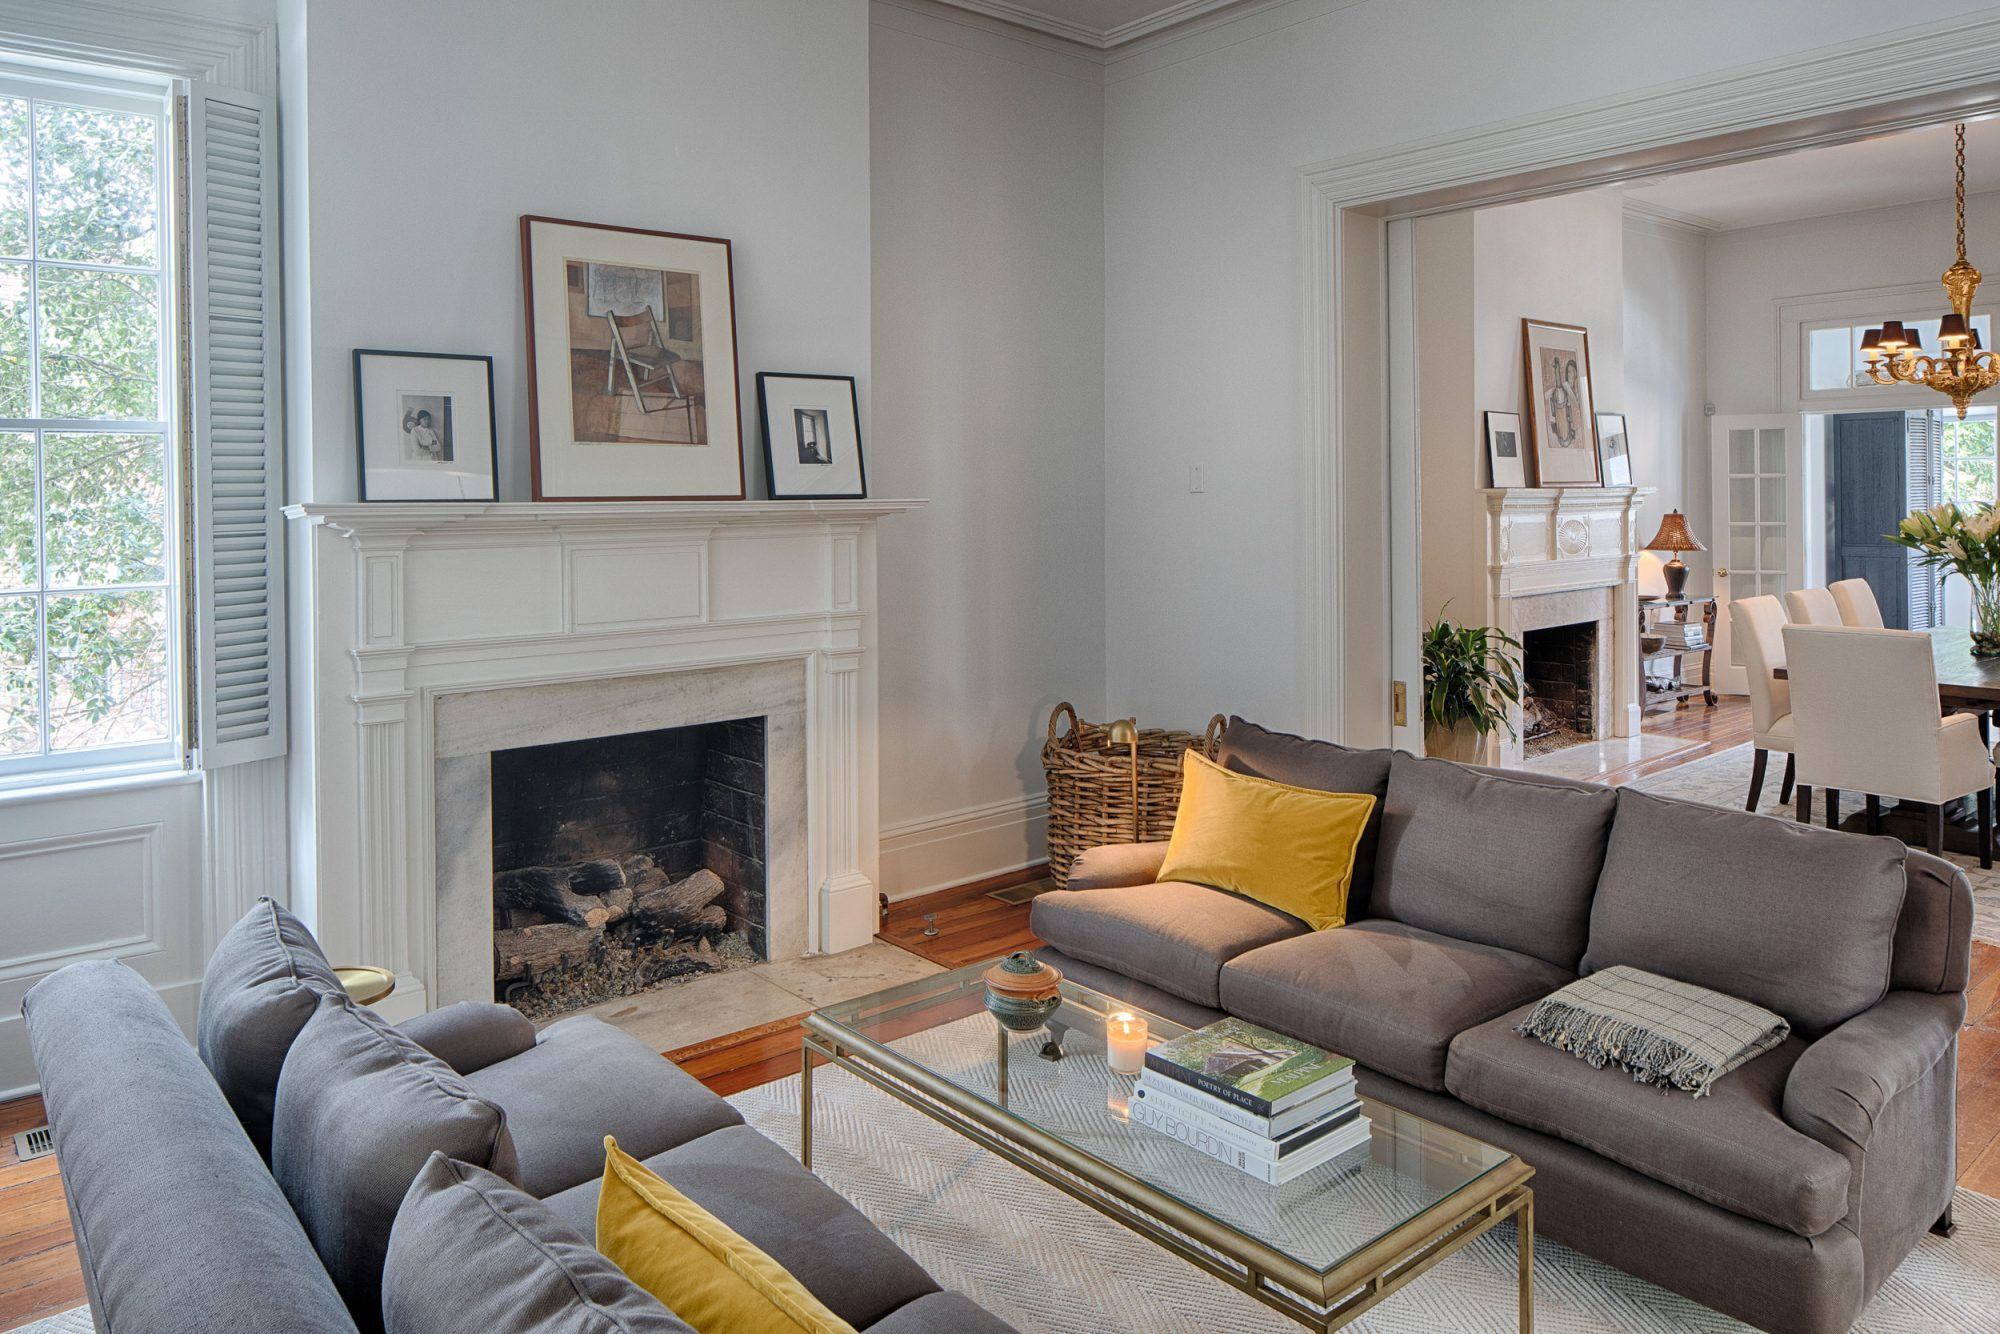 Take A Look Inside One Of Savannah Rsquo S Most Elegant Historic Homes Southern Living